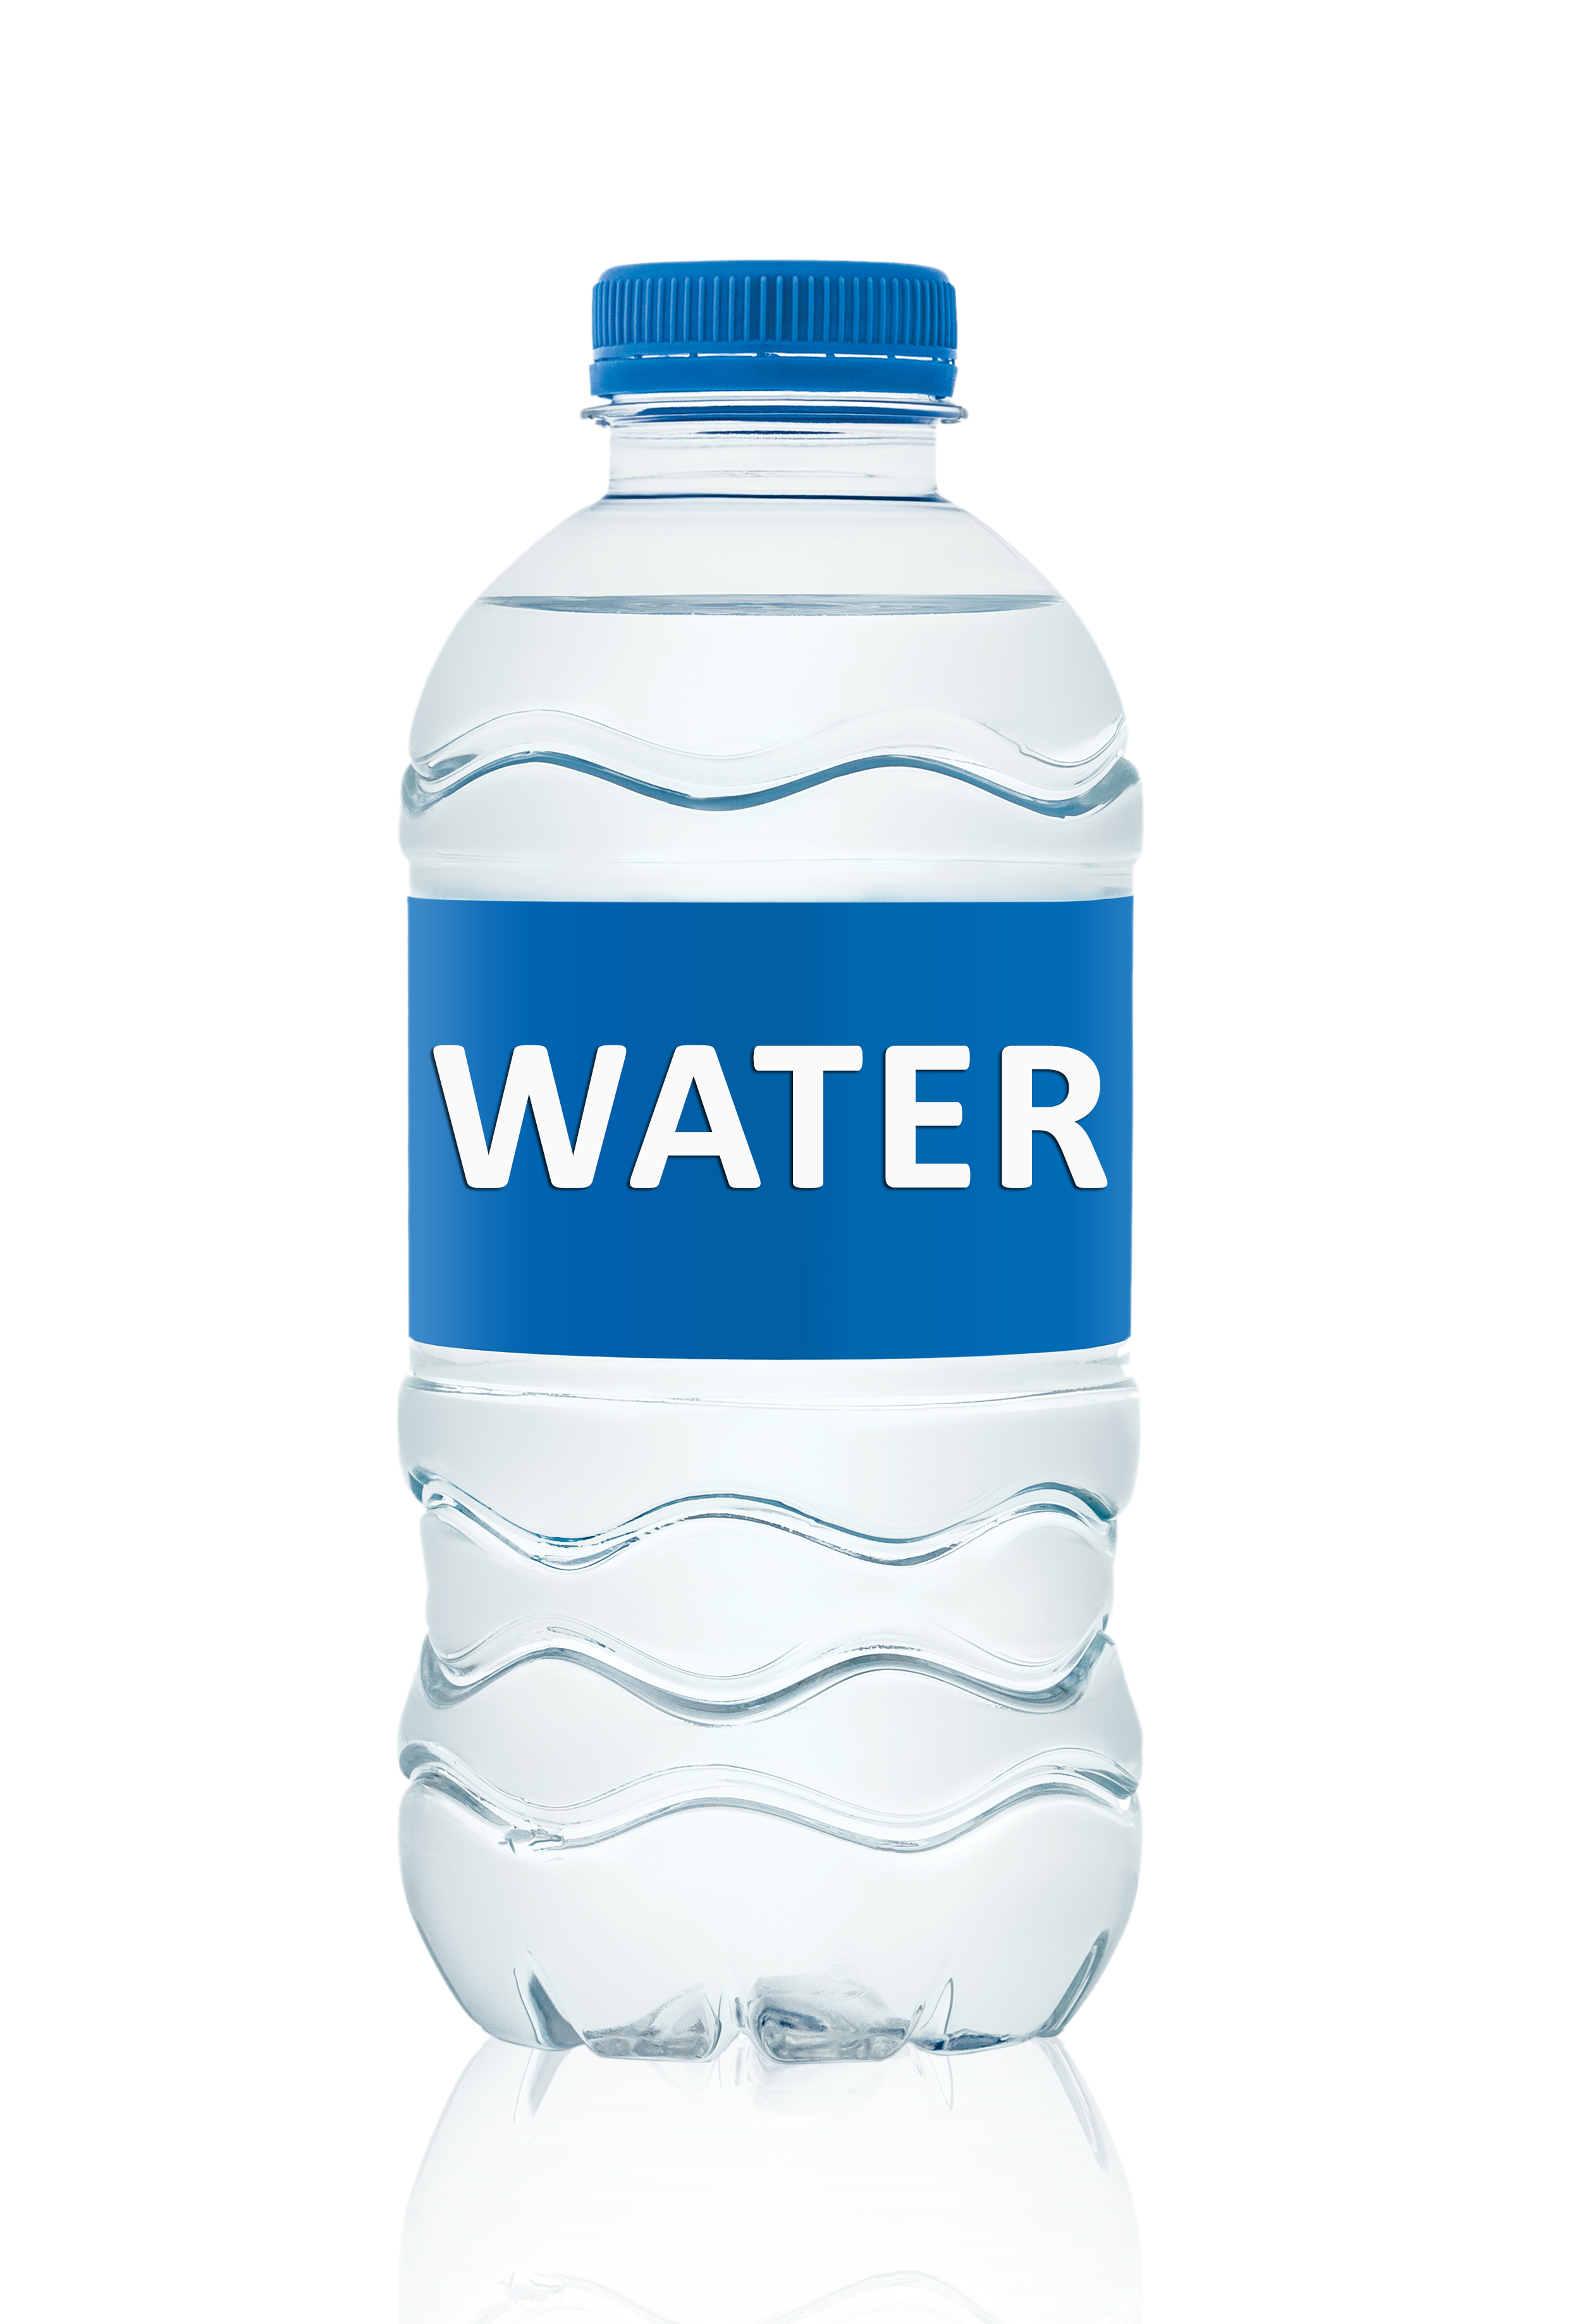 Water Bottle Png (+).